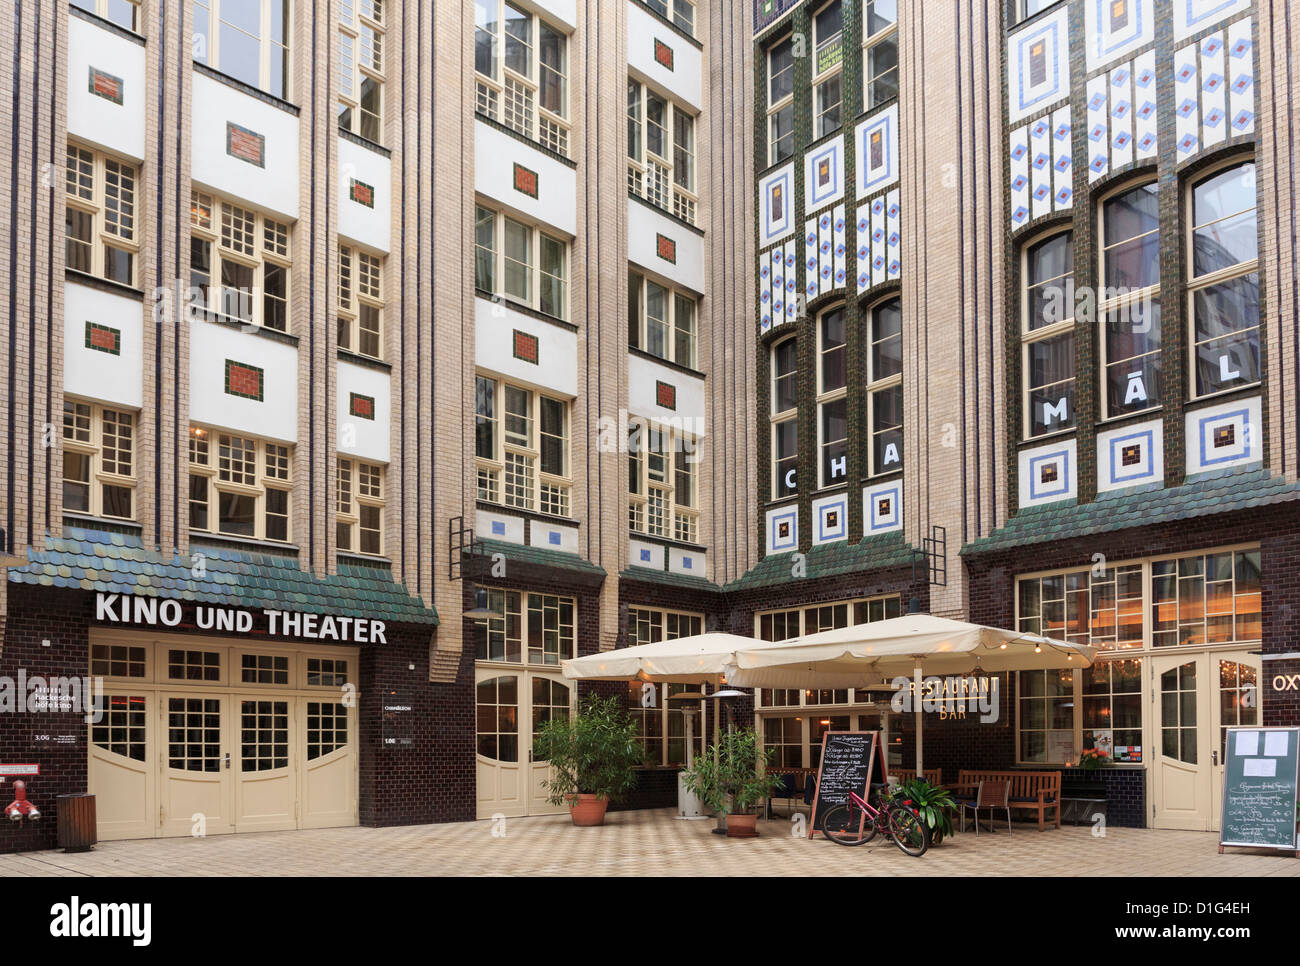 New theatre and restaurant in one of the historic courtyards of Hackesche Hofe in former east Berlin, Germany - Stock Image